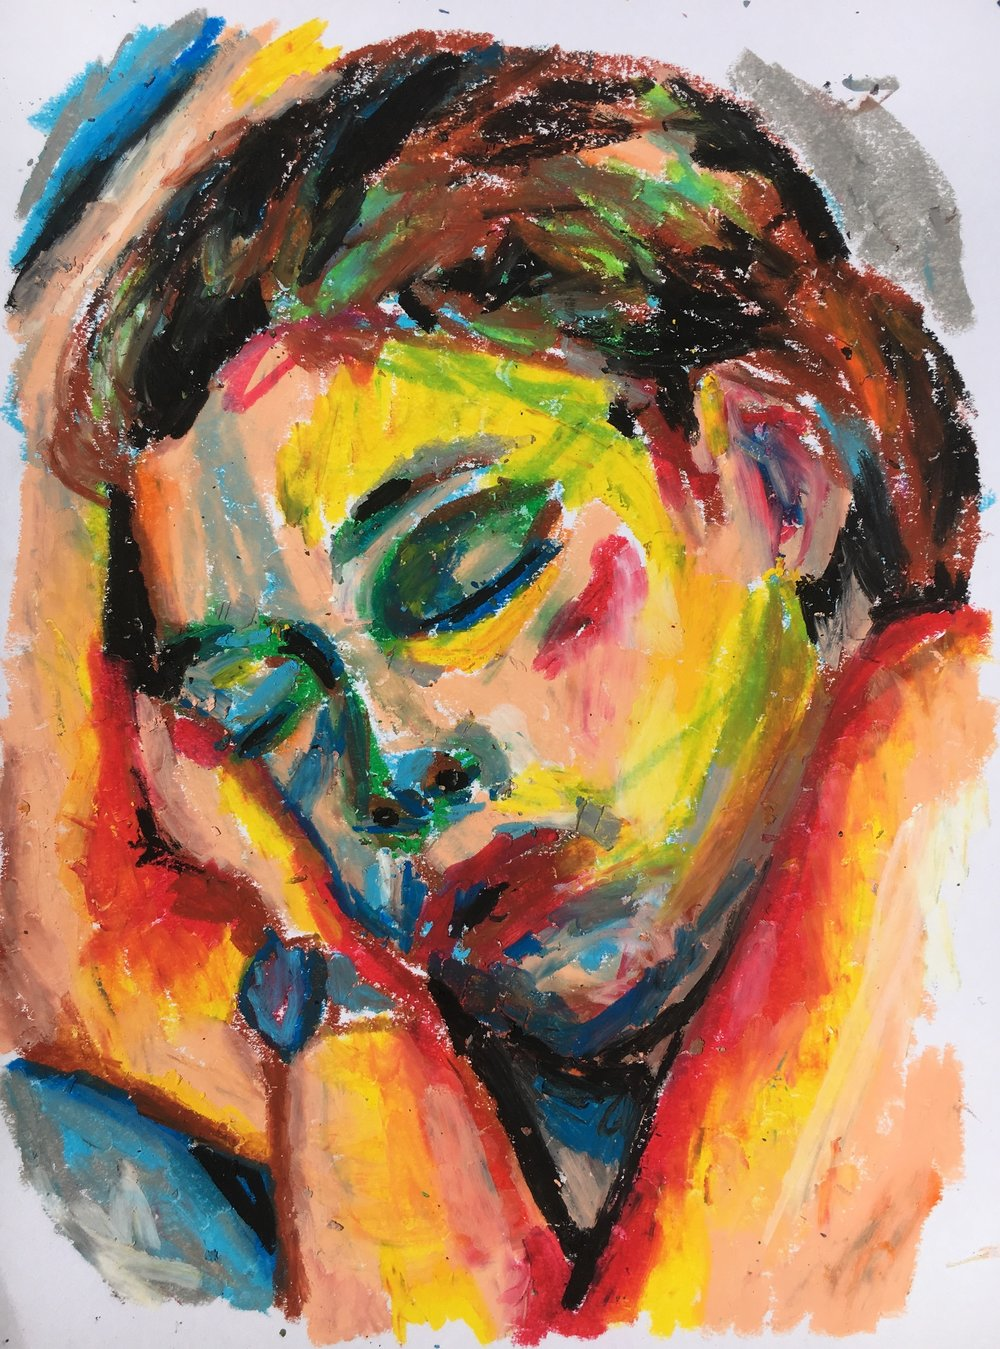 Sleeping Briana, 2016 | Oil pastel on paper, 8x11""